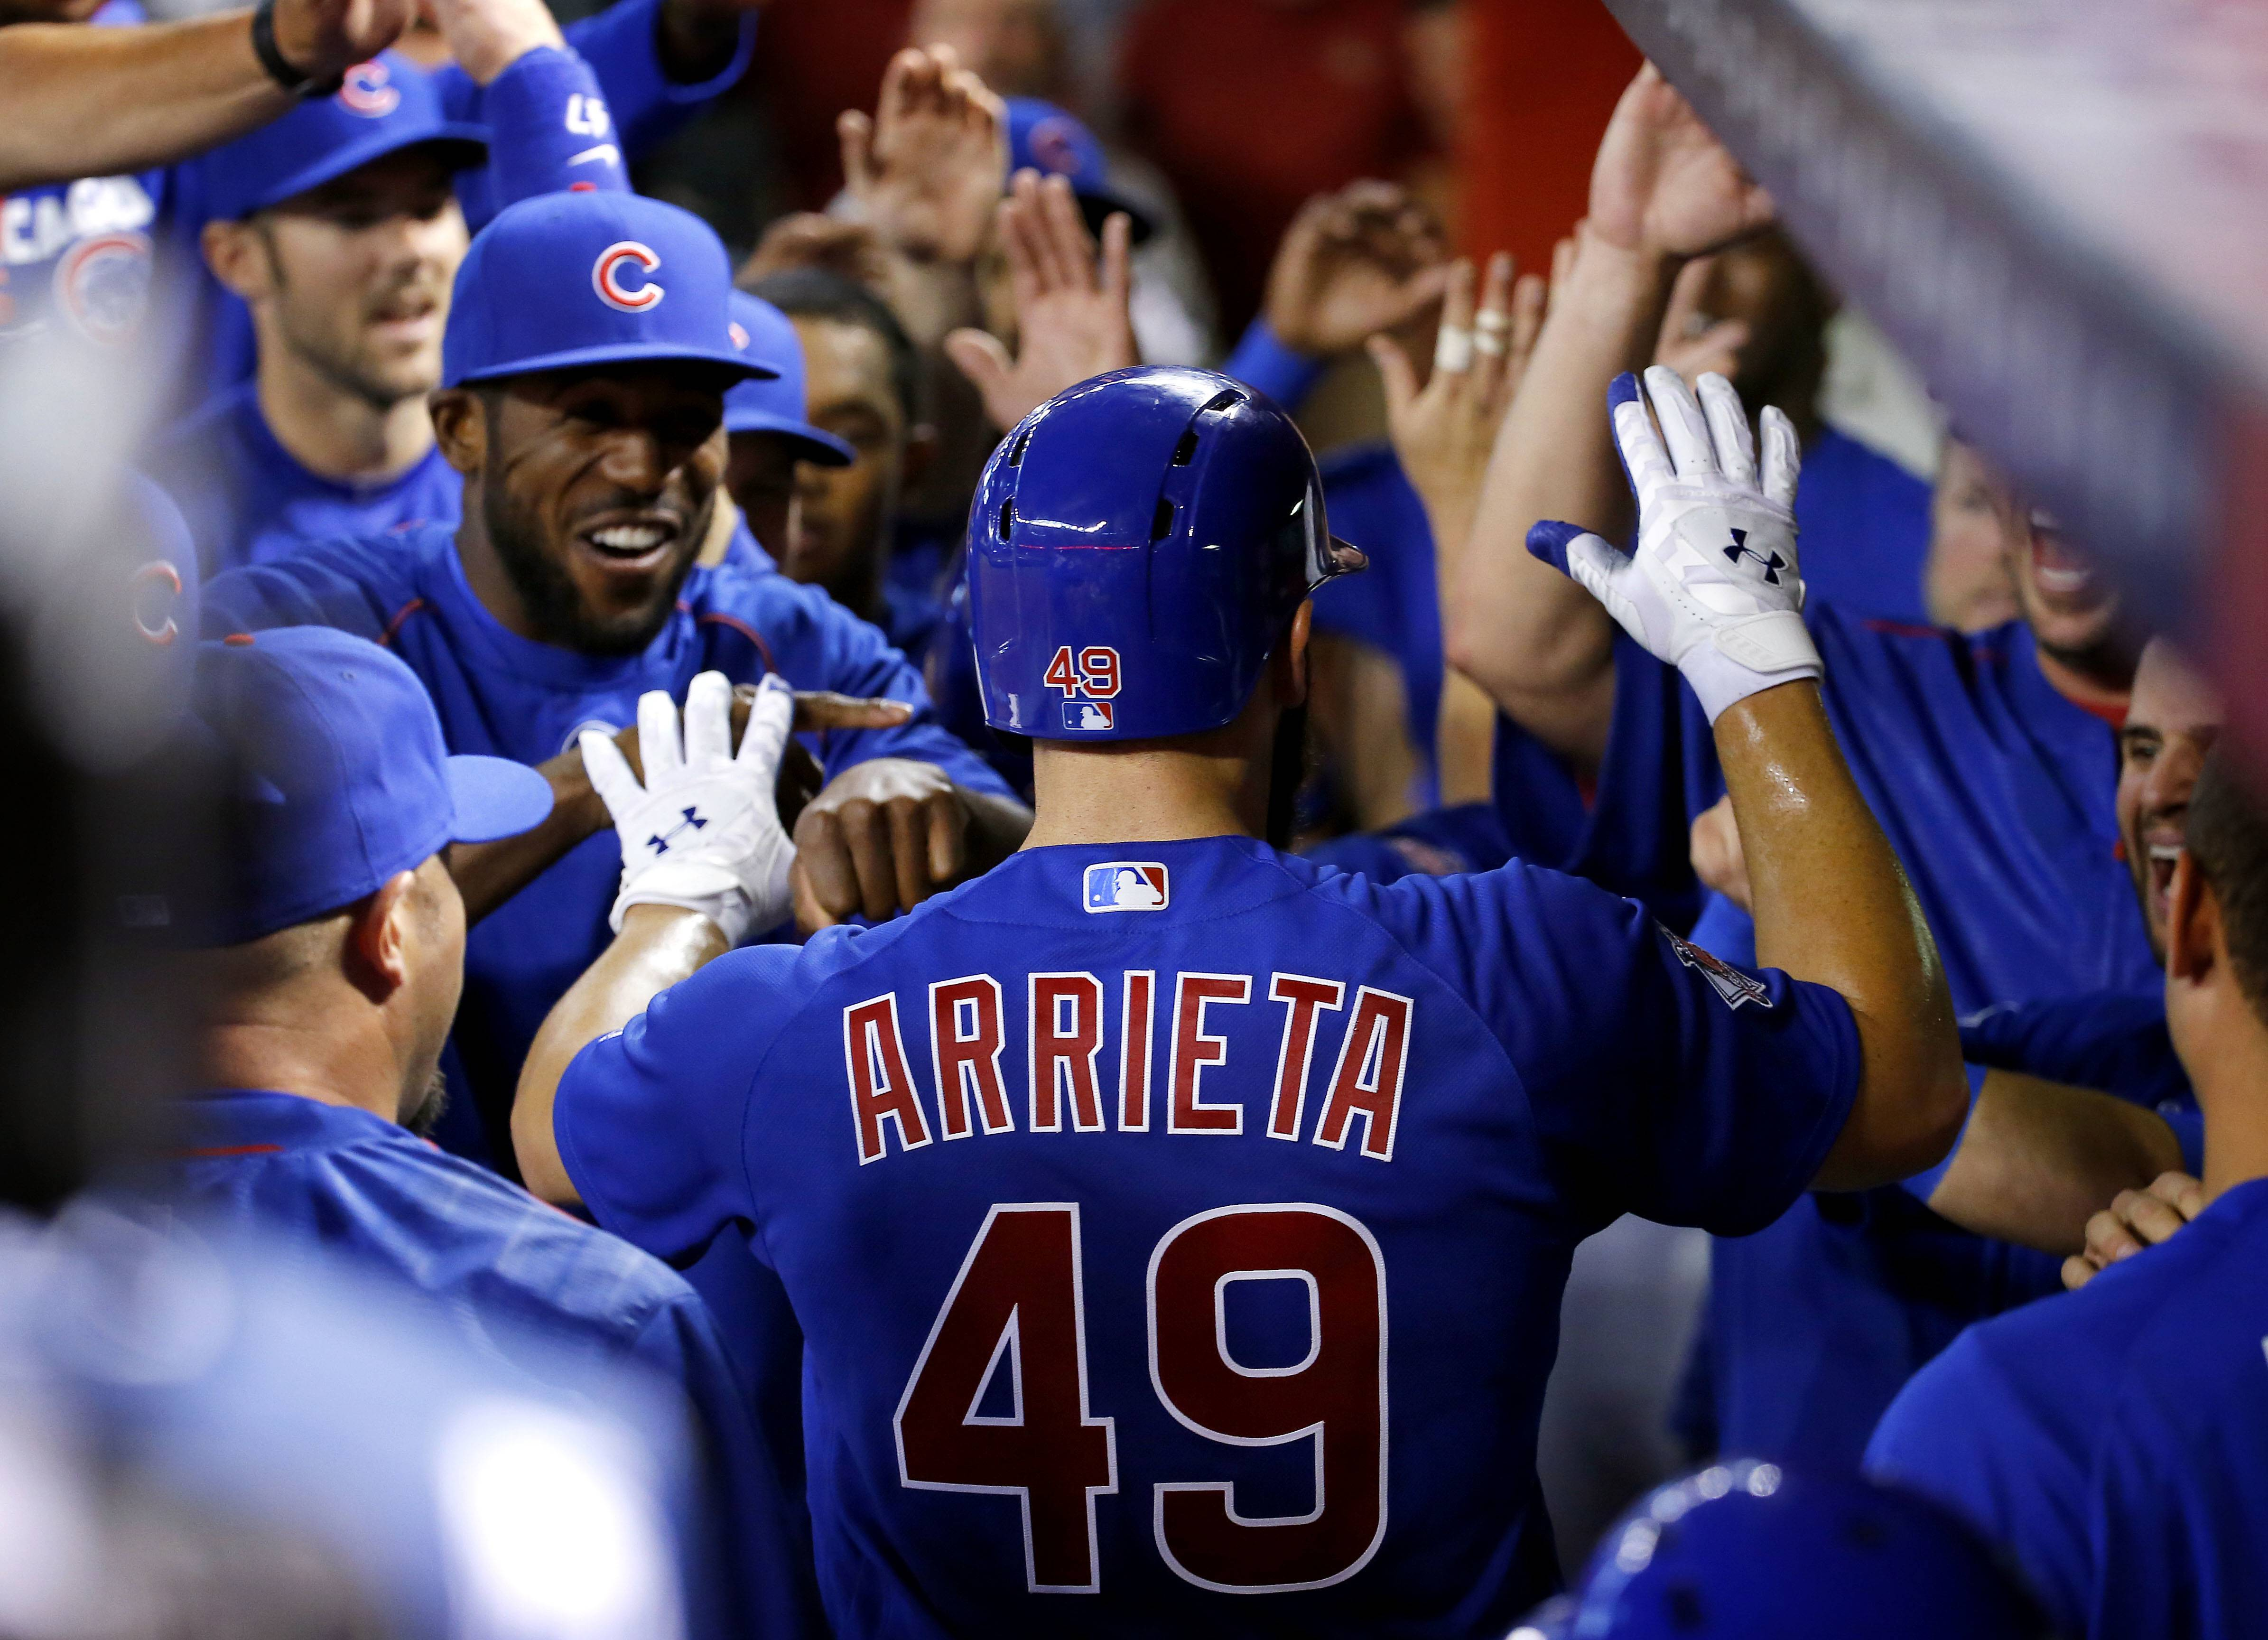 Arrieta homers, pitches 7 innings to lead Cubs over Arizona